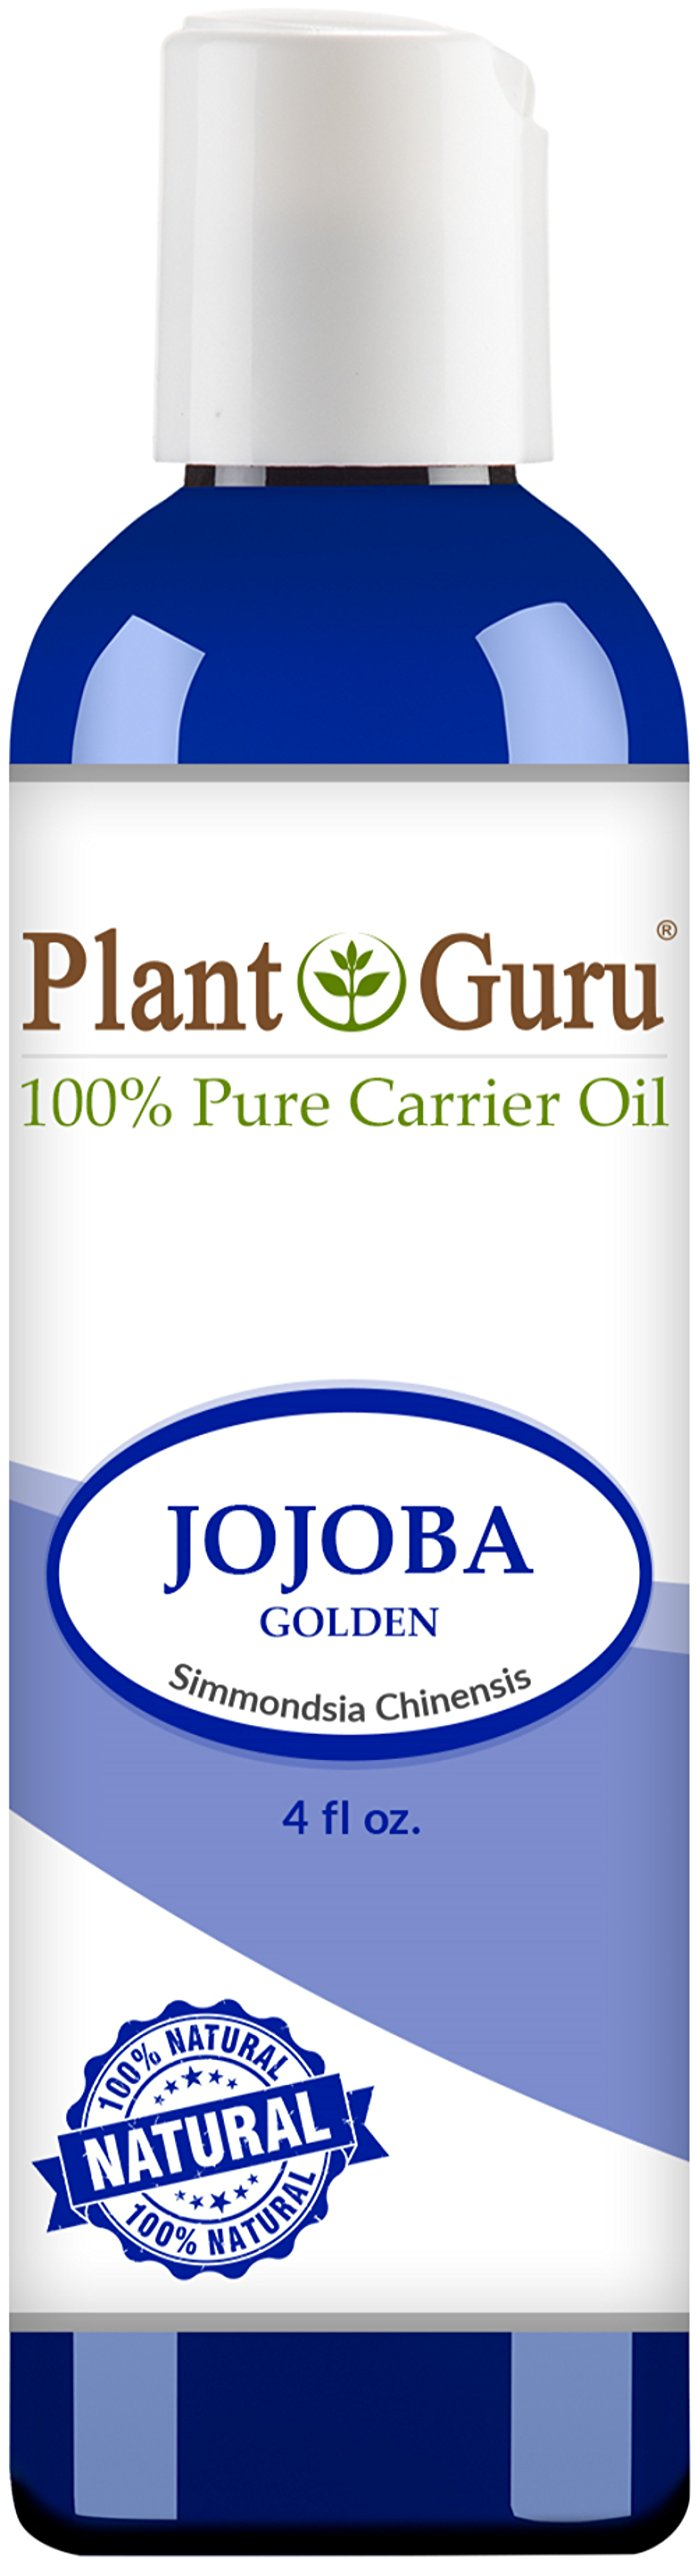 Jojoba Oil 4 oz. Cold Pressed 100% Pure Natural Carrier - Skin, Body And Hair Moisturizer. Works For Massage, Aromatherapy, & More!